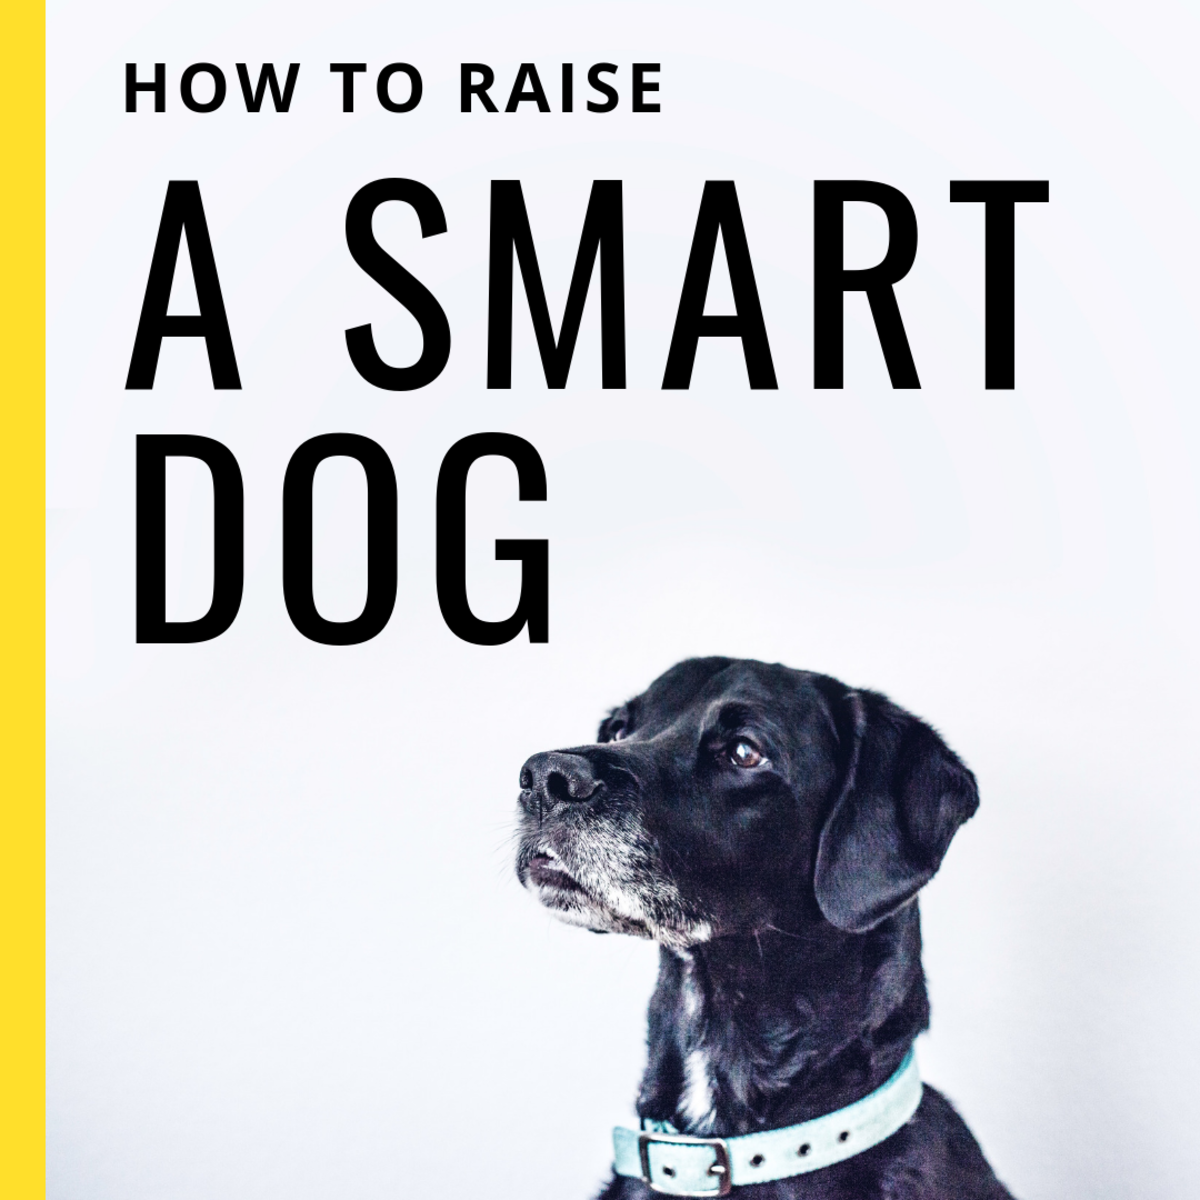 Though the Internet might try to tell you otherwise, any dog can be trained to be smarter.